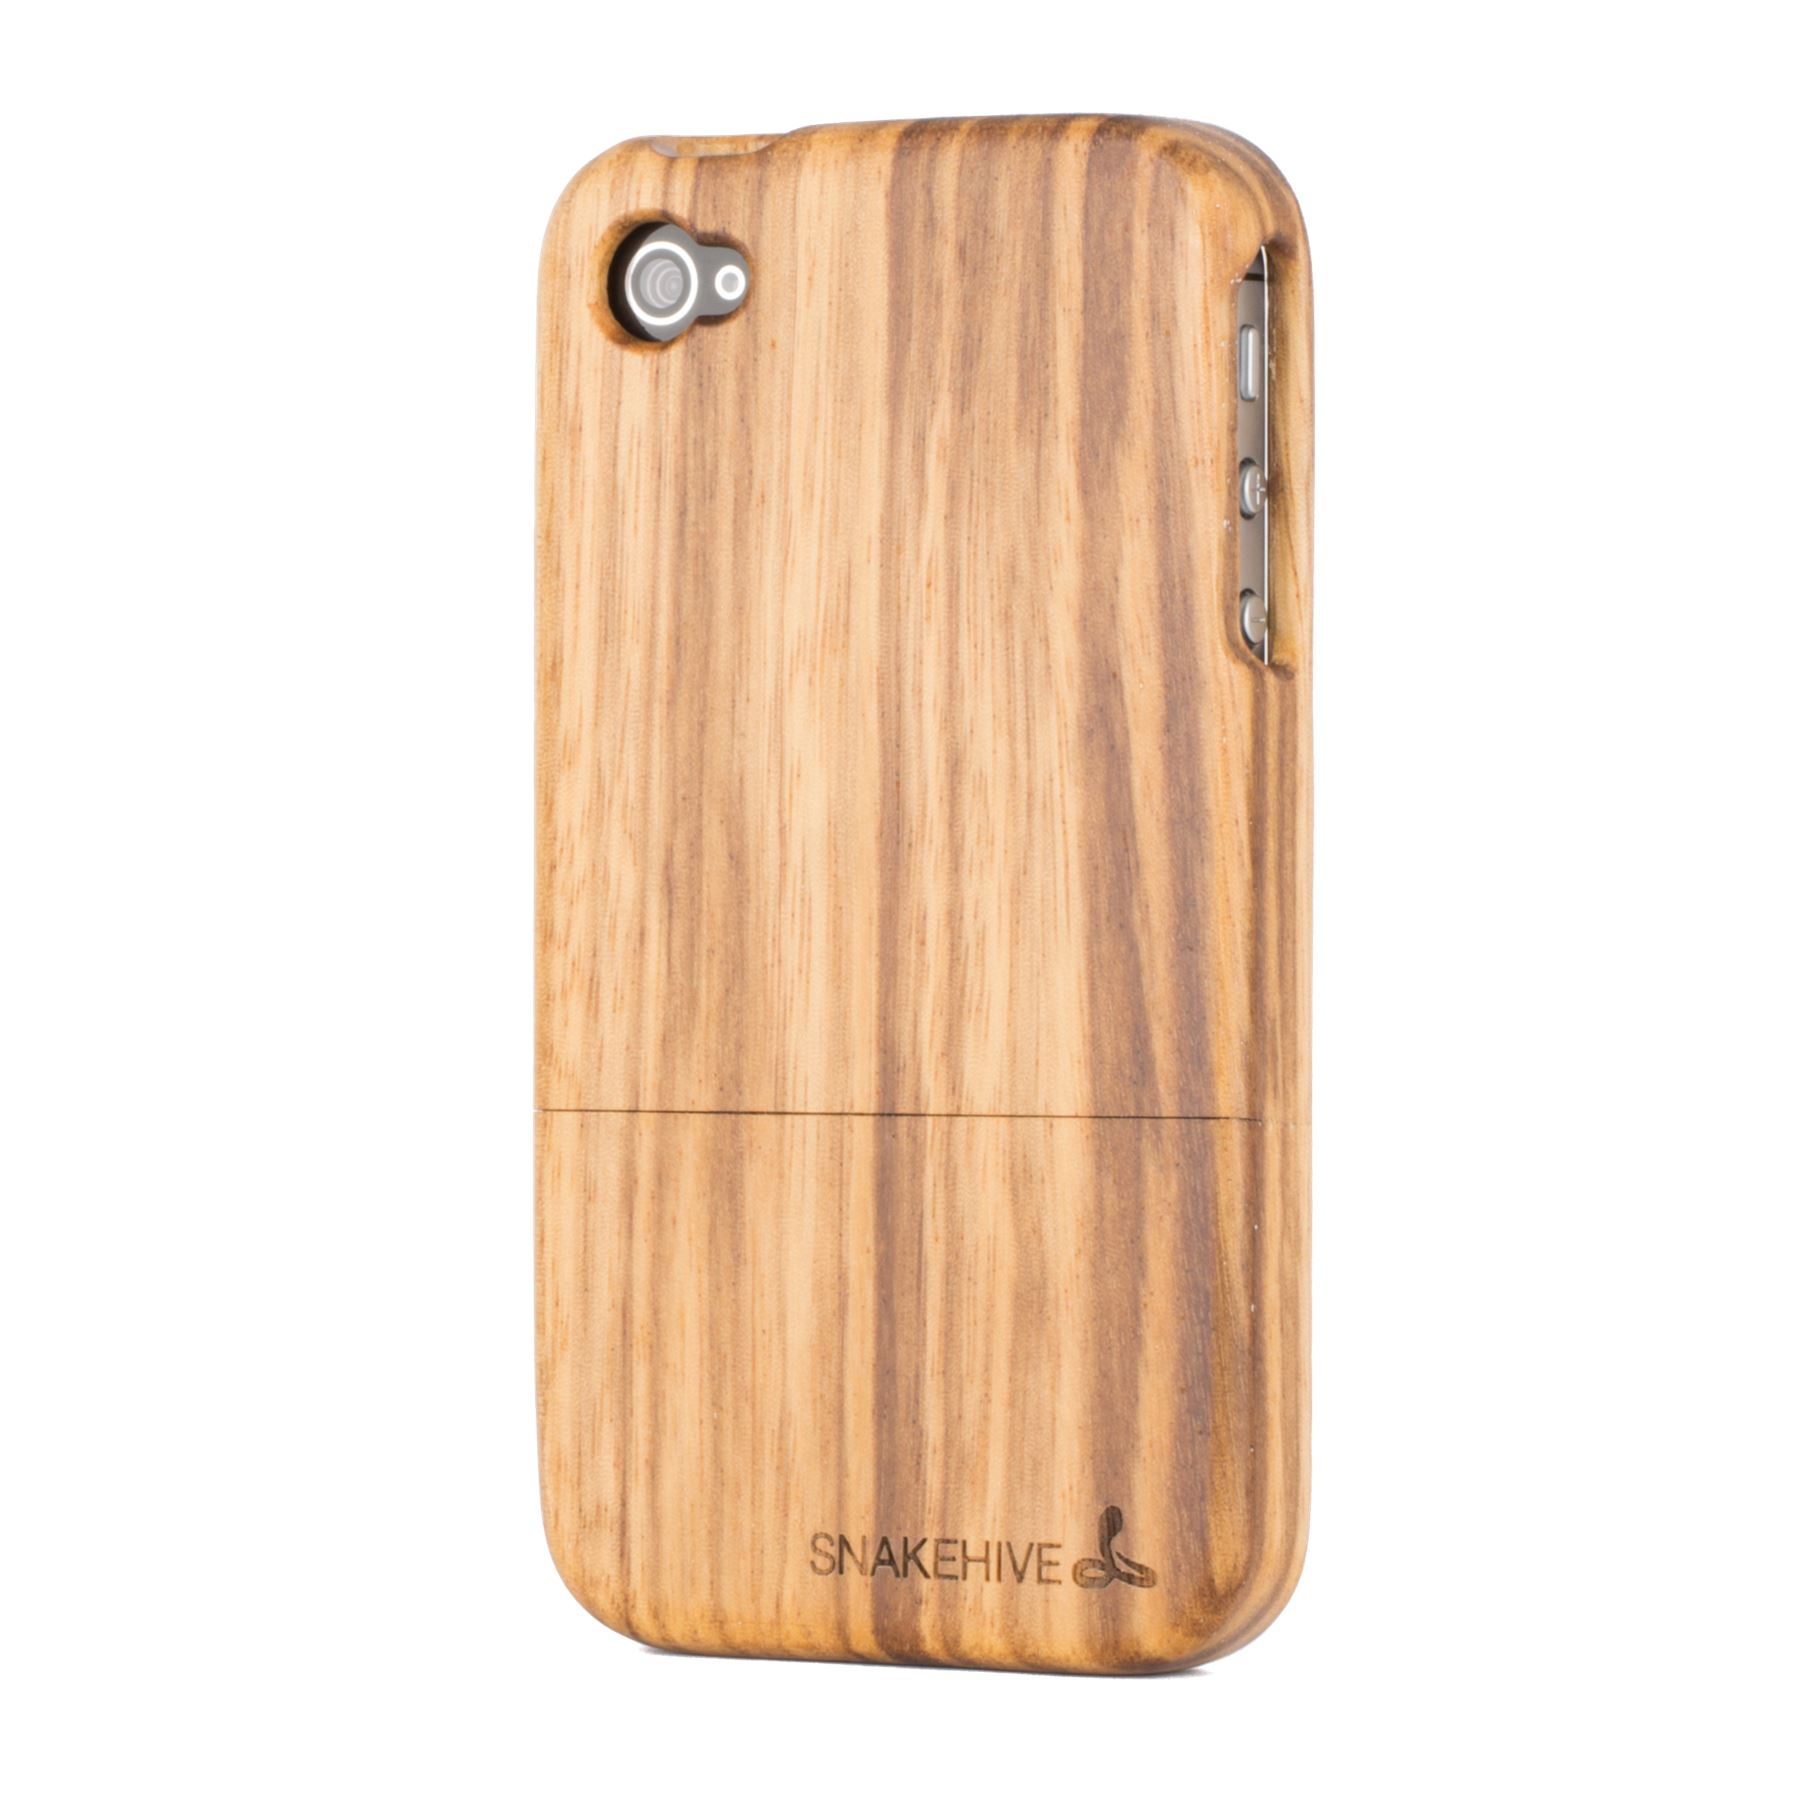 snakehive real solid wooden case cover for apple iphone 4 4s natural wood ebay. Black Bedroom Furniture Sets. Home Design Ideas